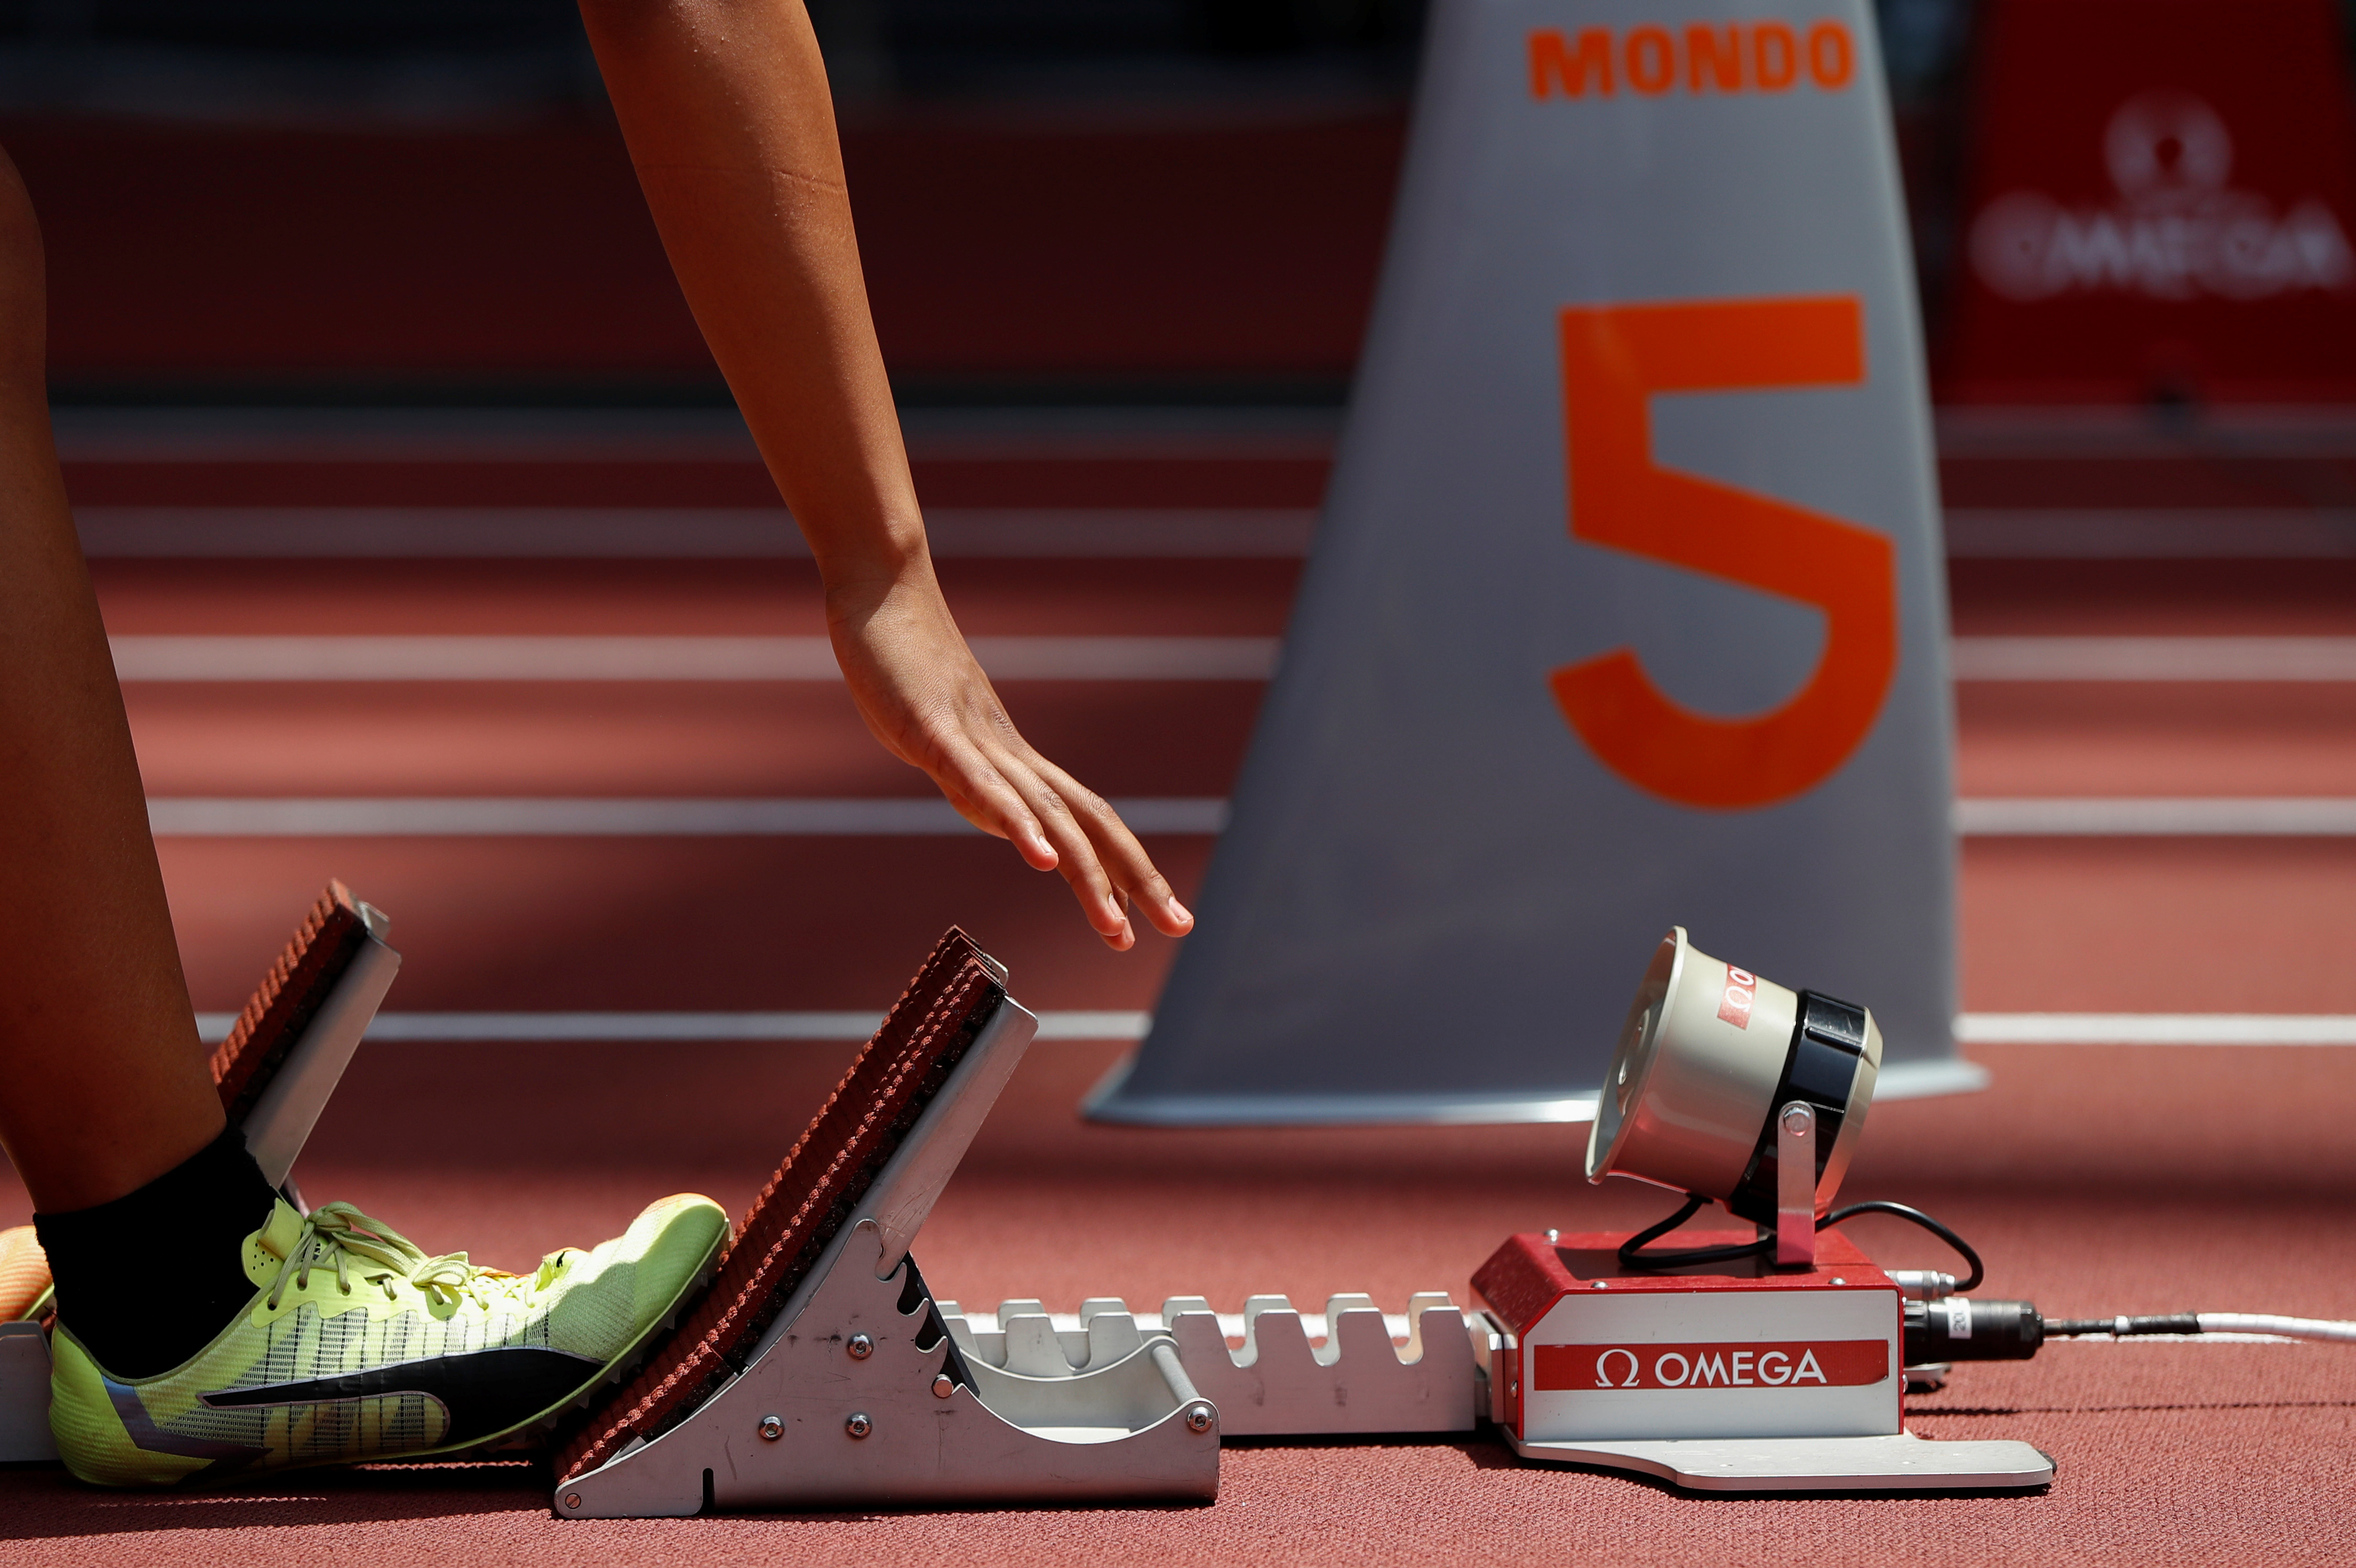 Olympics - Tokyo 2020 Olympic Games Test Event - Athletics - Olympic Stadium, Tokyo, Japan - May 9, 2021.   A close-up view of a starting block is seen on the track during the morning session of the Athletics test event. REUTERS/Issei Kato